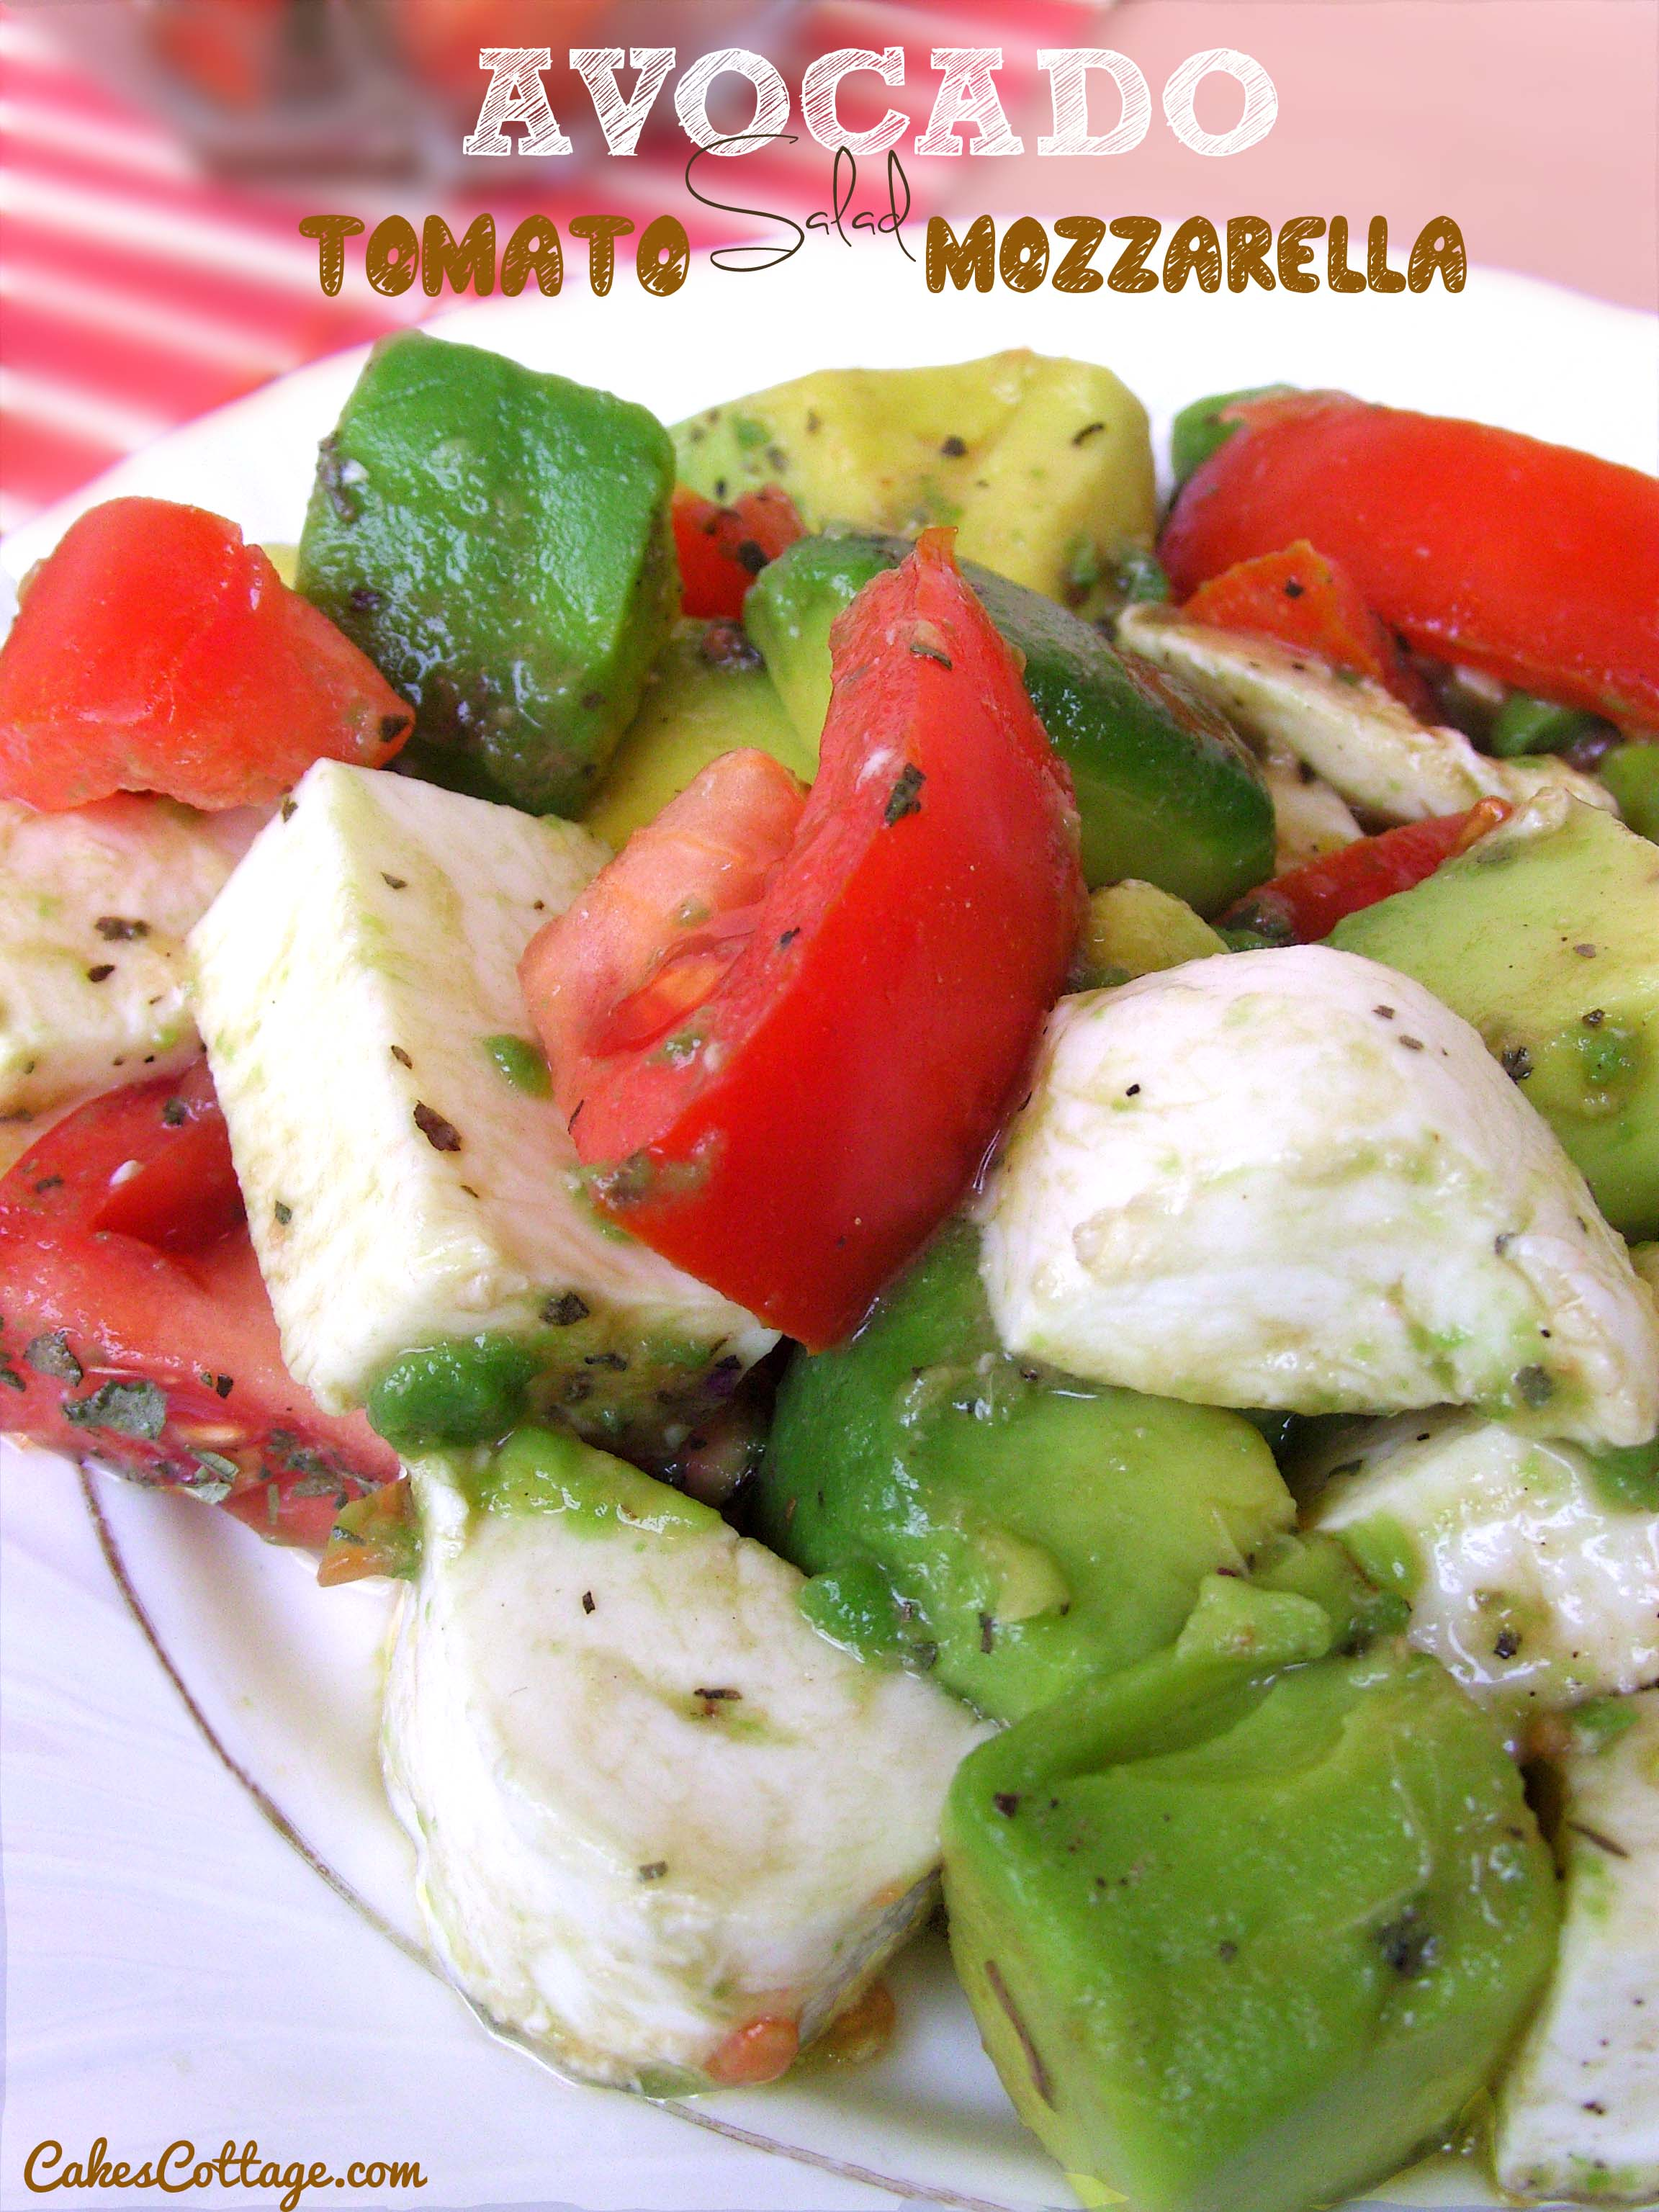 Mozzarella-Avocado-Tomato-Salad